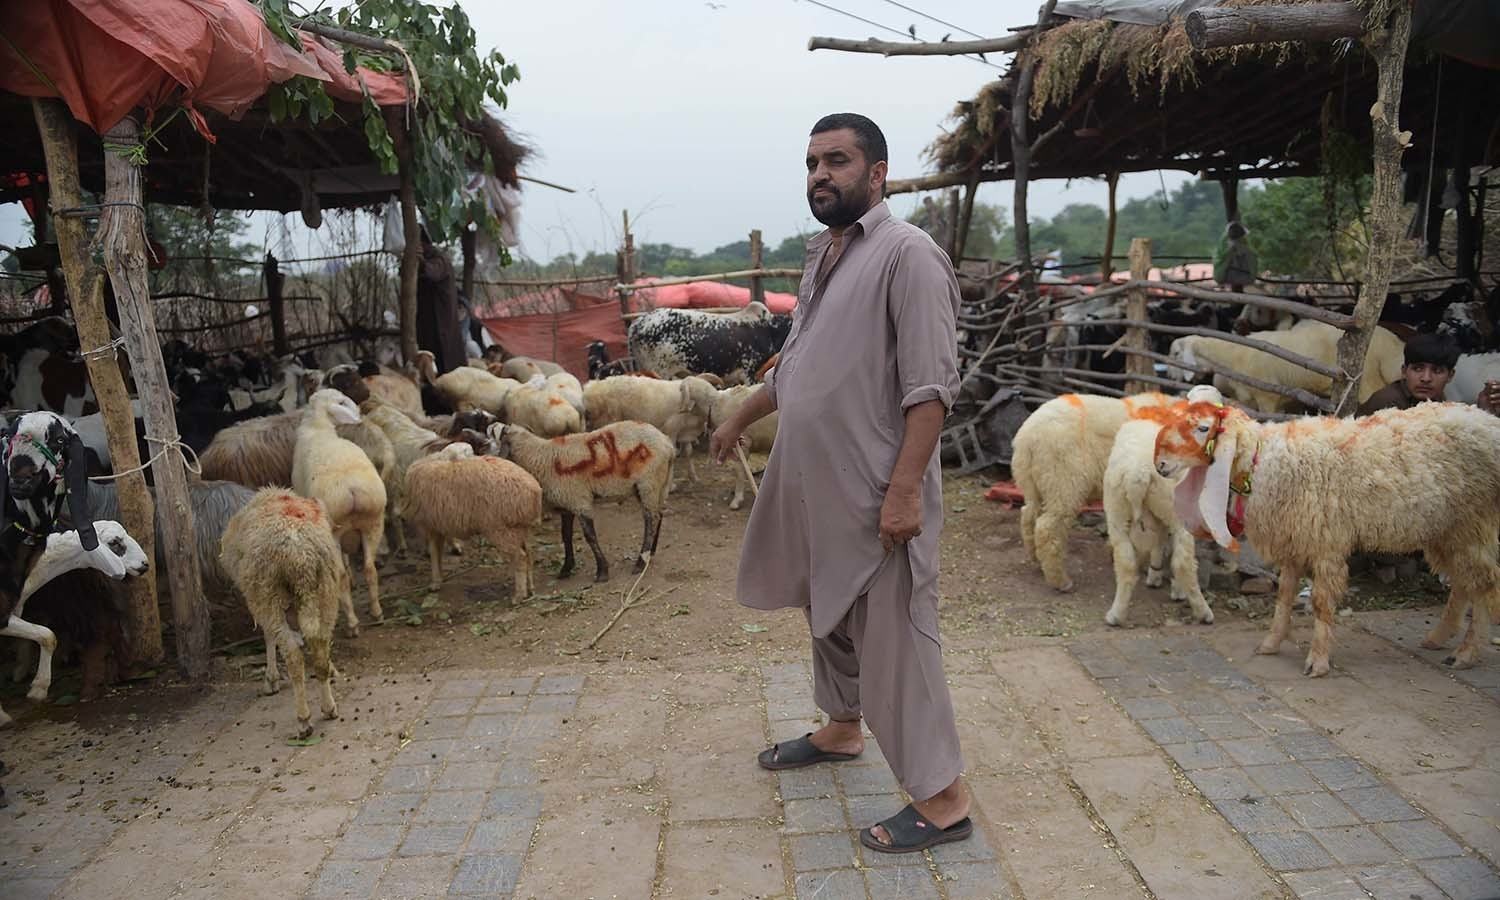 A seller waits for customers at a livestock market ahead of the sacrificial Eidul Azha festival in Islamabad. — AFP